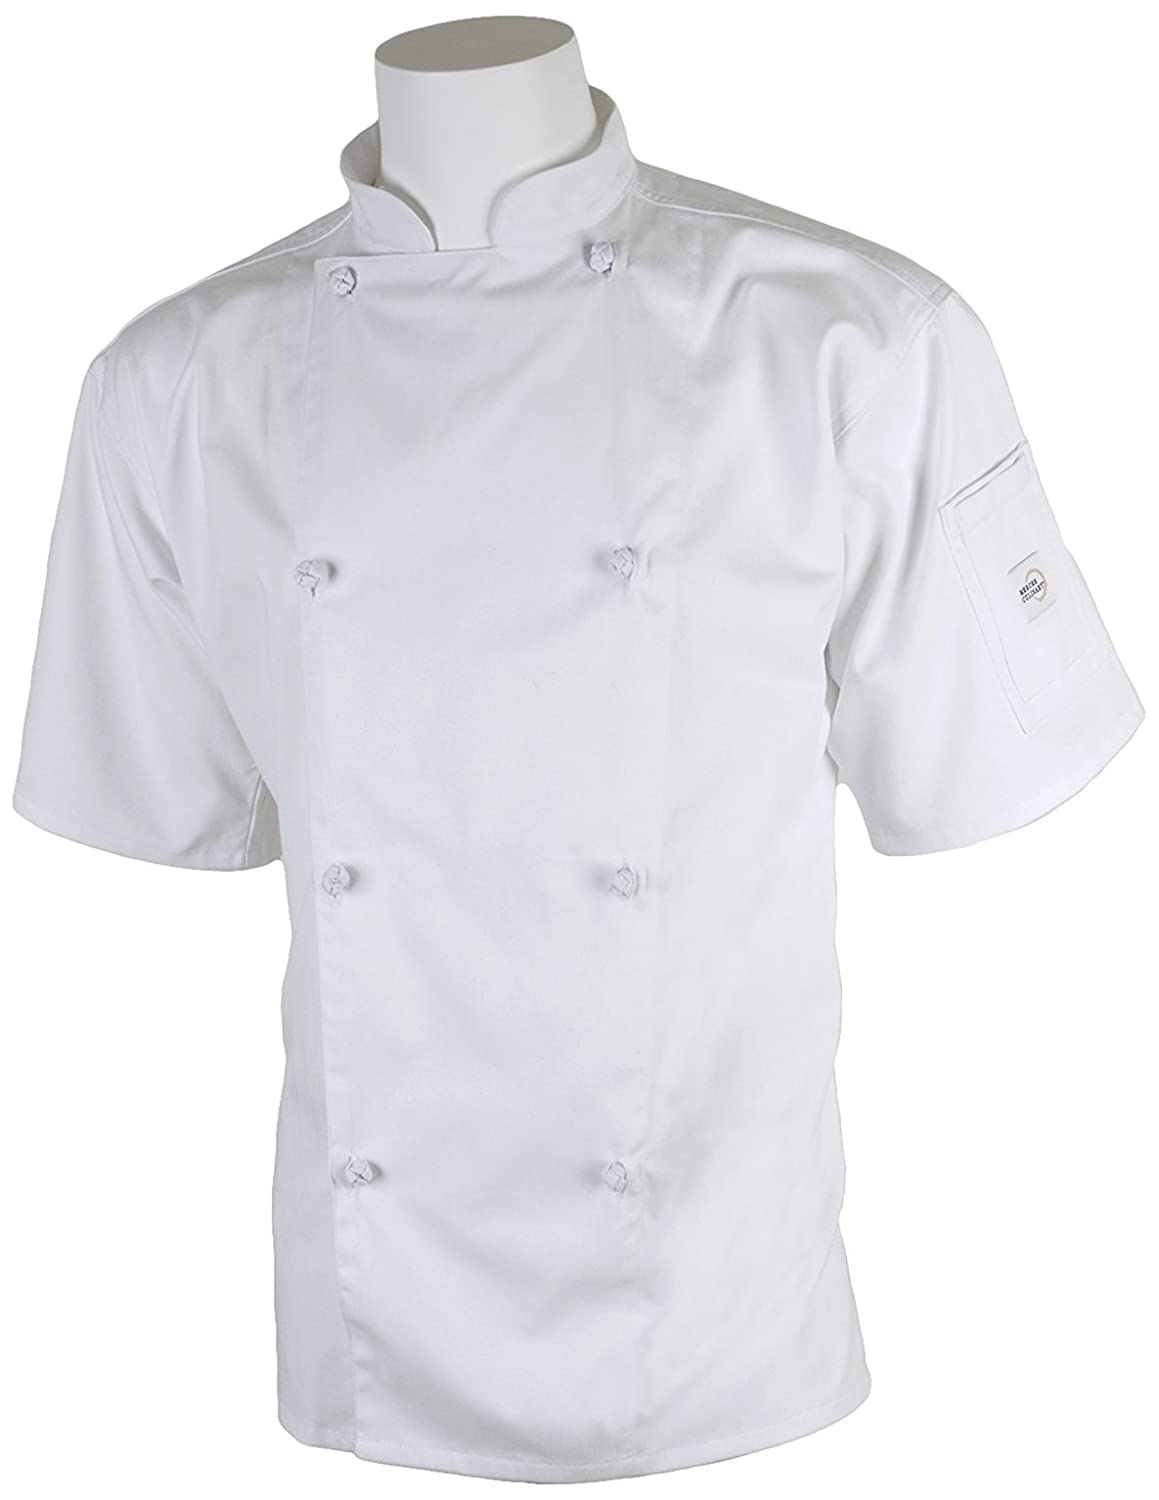 Mercer Culinary M61022WHS Genesis Unisex Short Sleeve Chef Jacket with Cloth Knot Buttons, Small, White